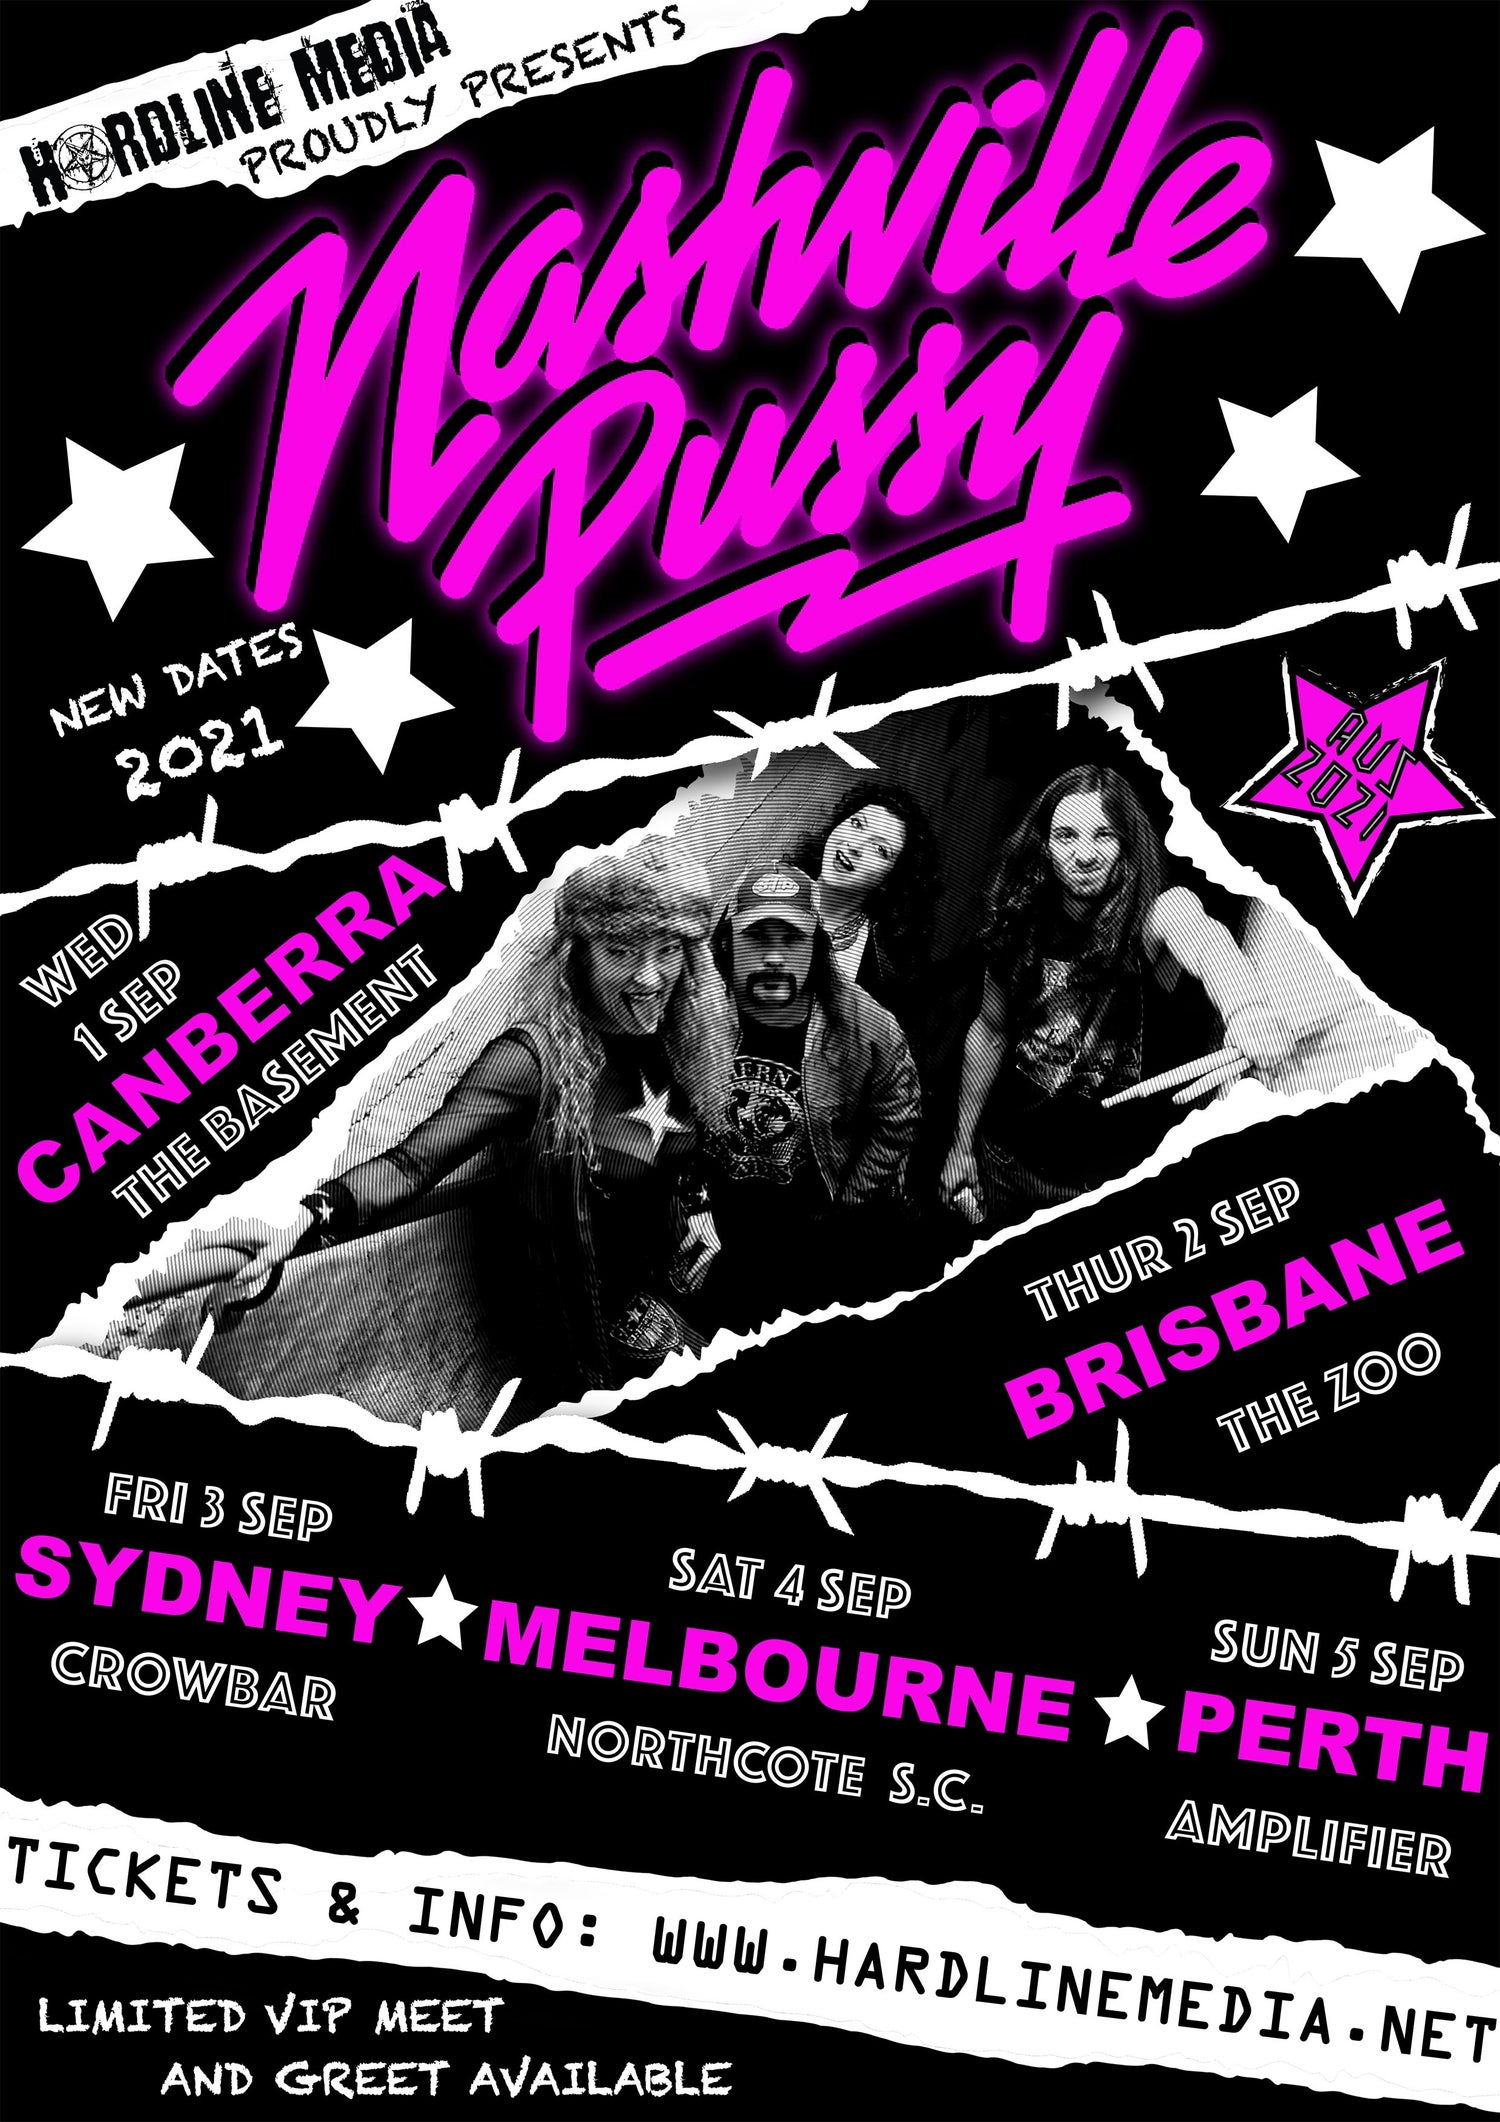 Image of VIP TICKET - NASHVILLE PUSSY - BRISBANE, THE ZOO - THURS 2 SEP 2021